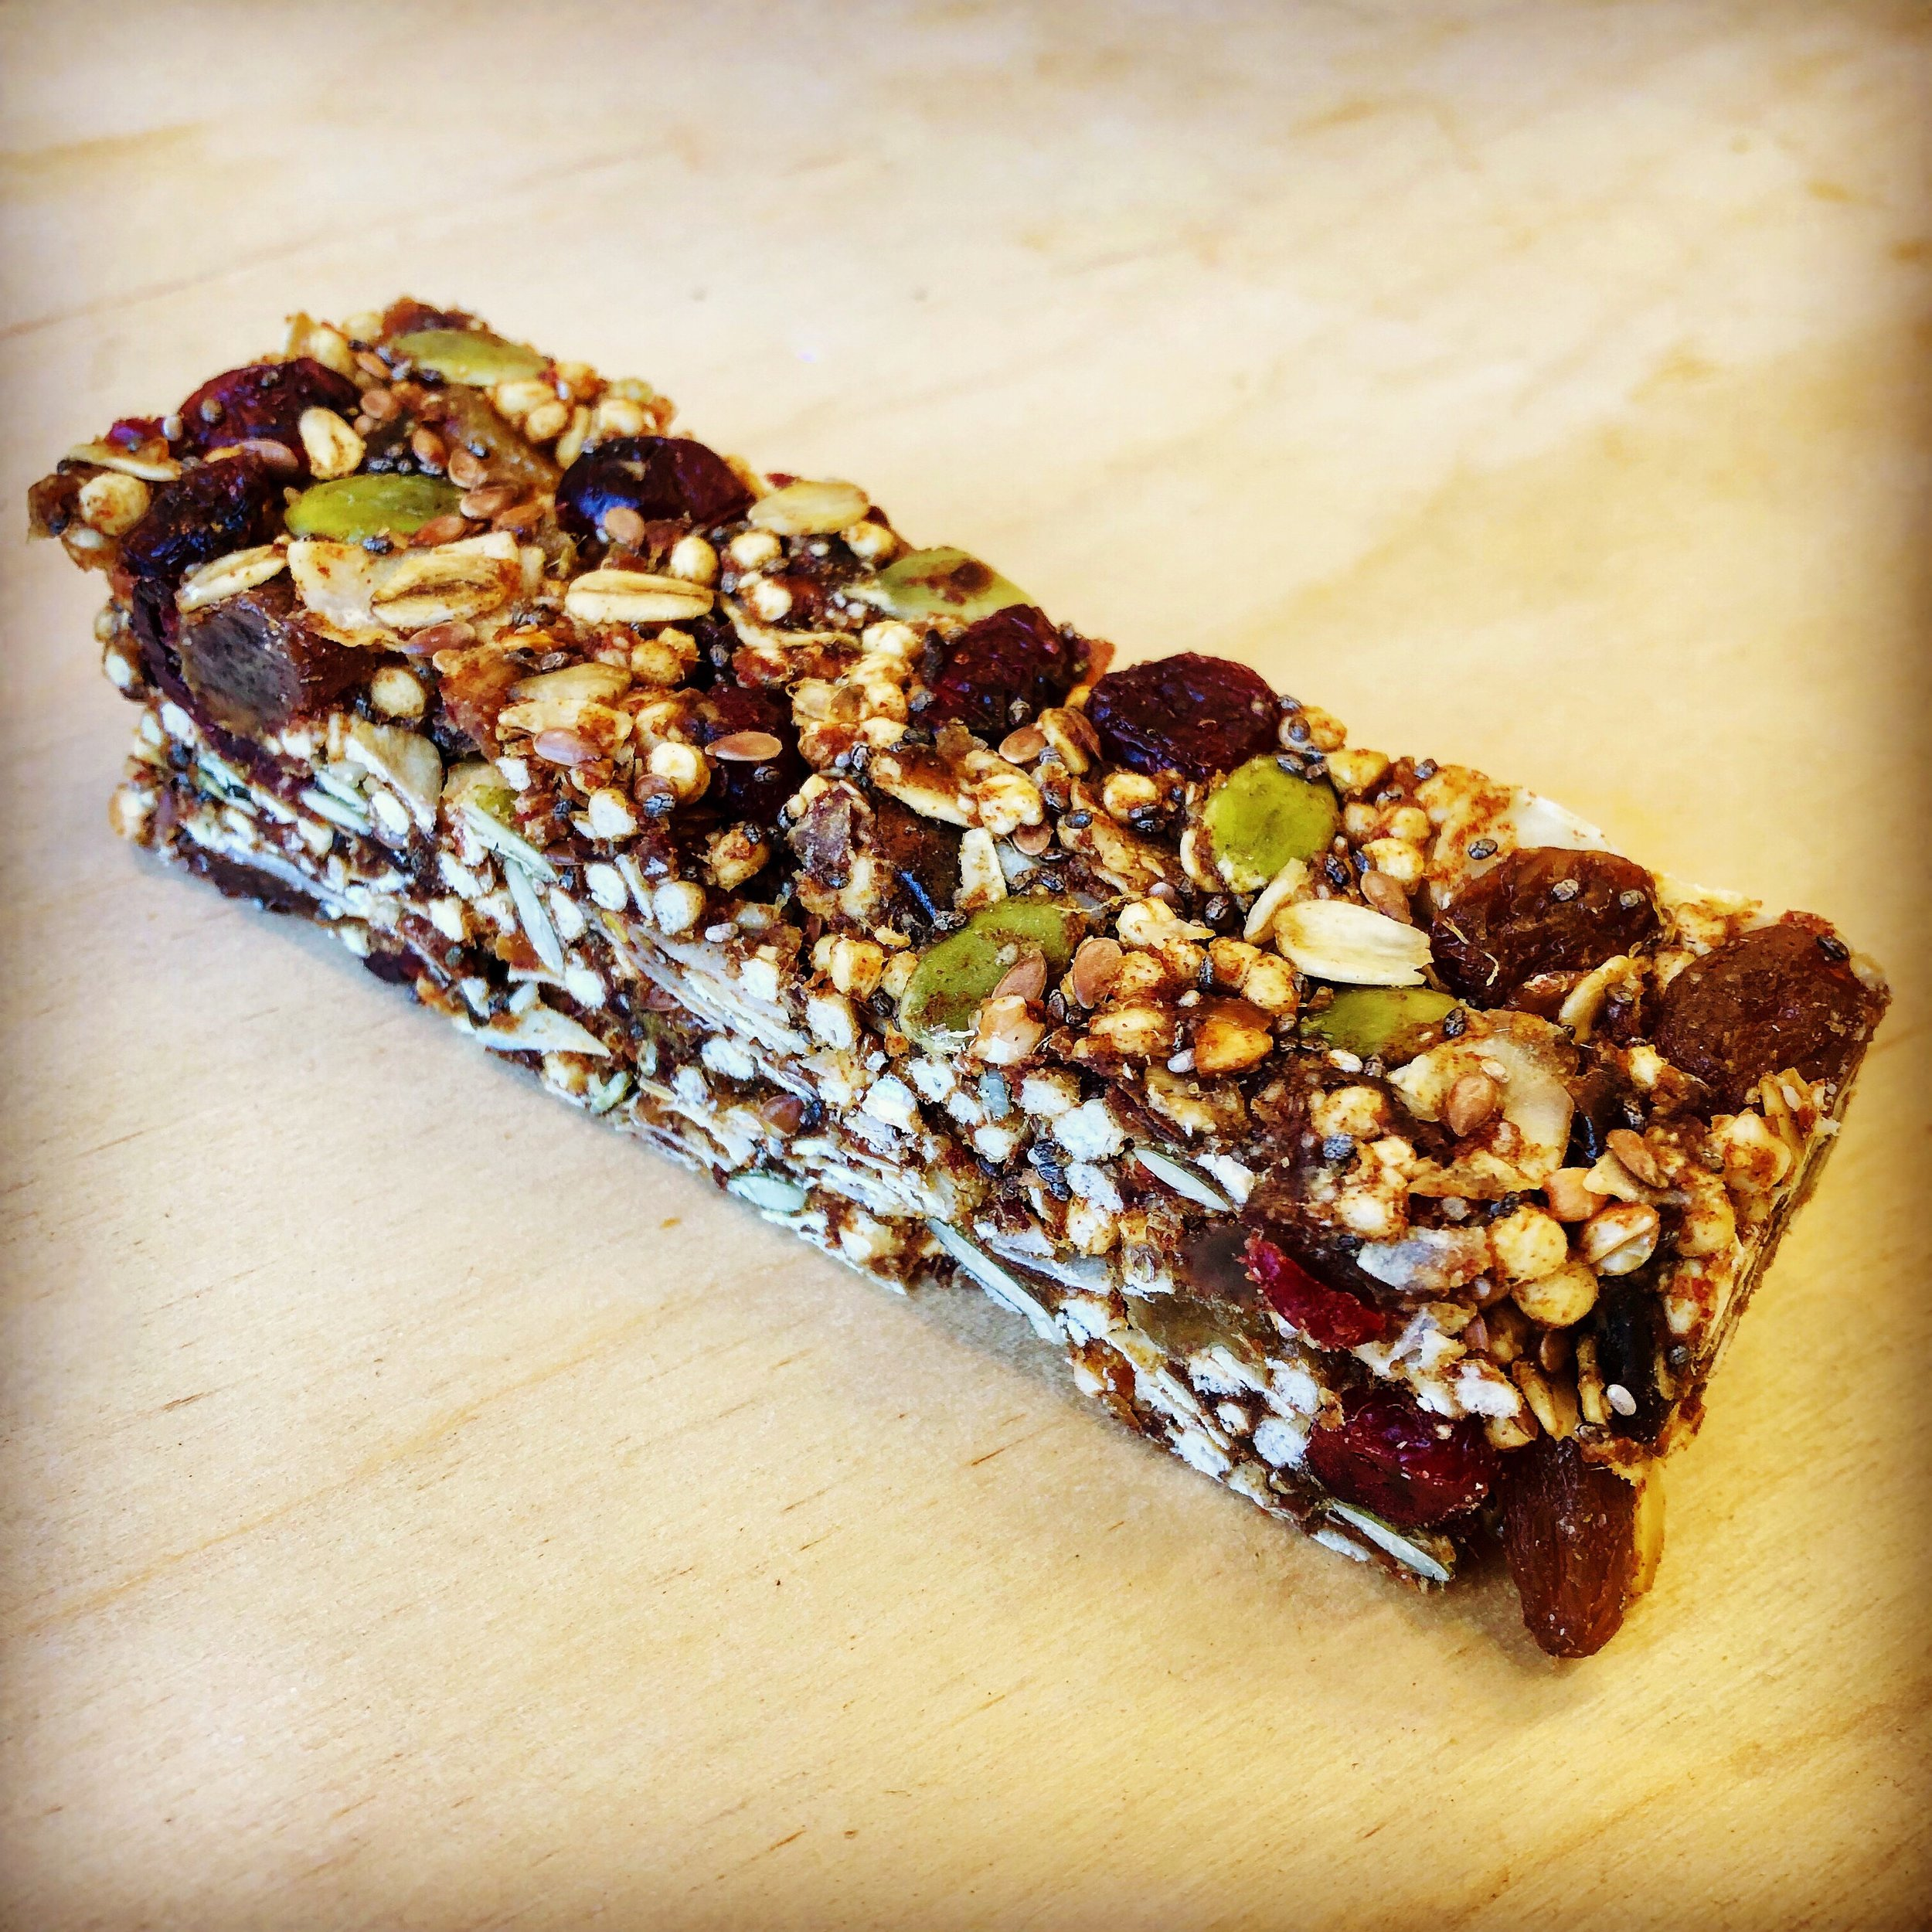 Vegan & gluten free energy bar